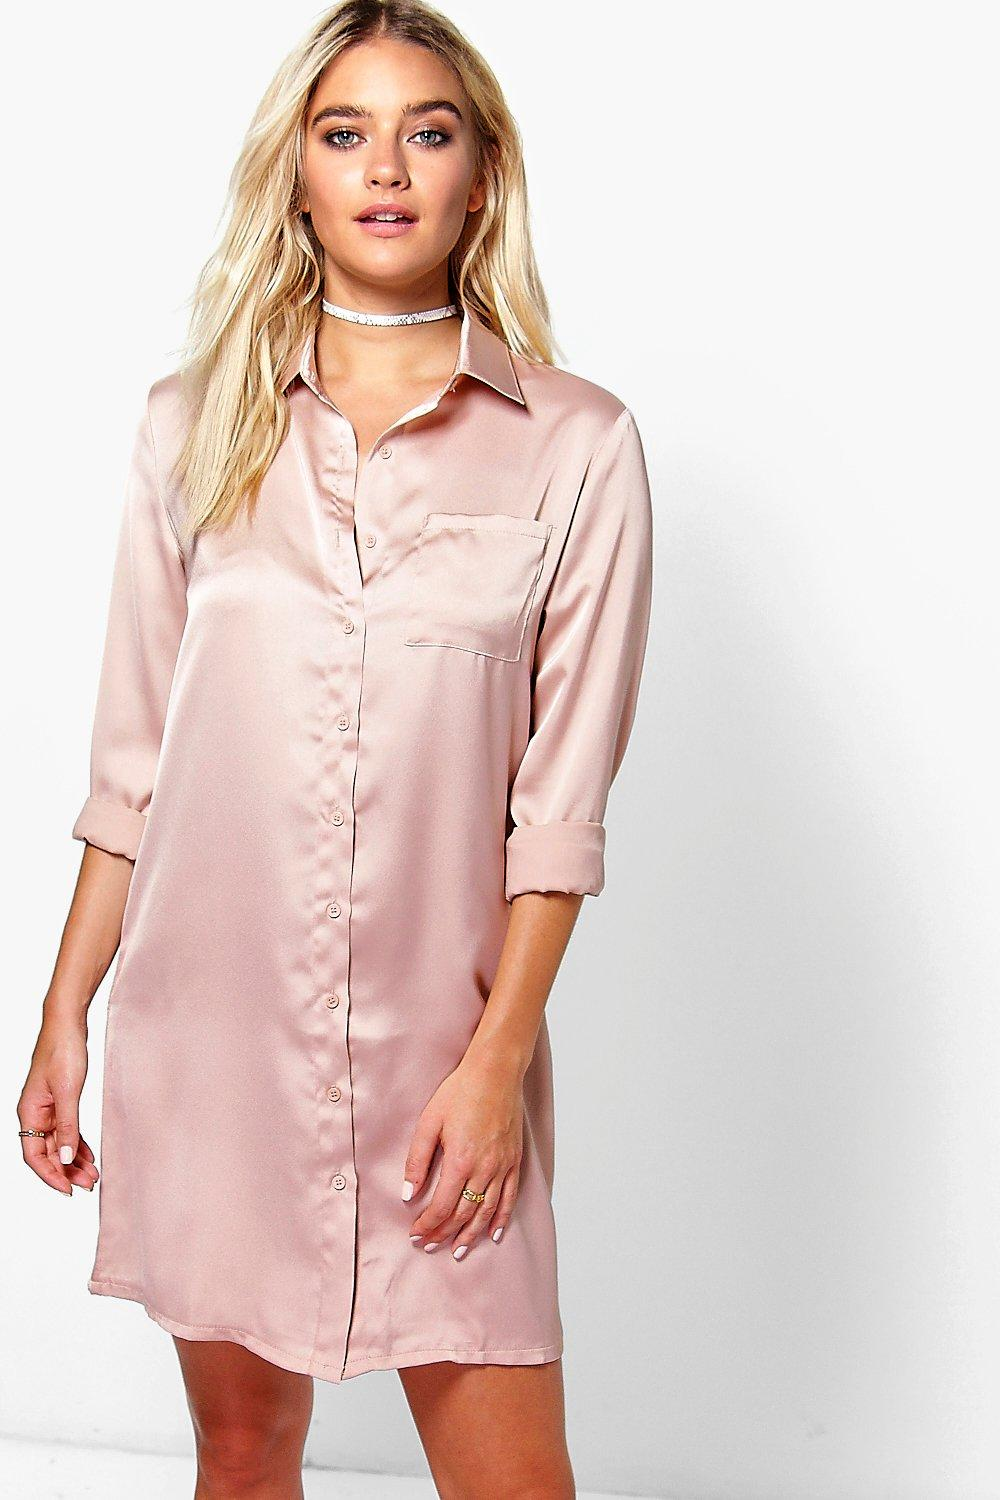 Our dress shirts for women feature a wide array of comfortable materials and fashionable cuts that improve every women's clothing options. Choose from an assortment of women's dress shirts including dynamic non-iron, fitted and tailored styles.